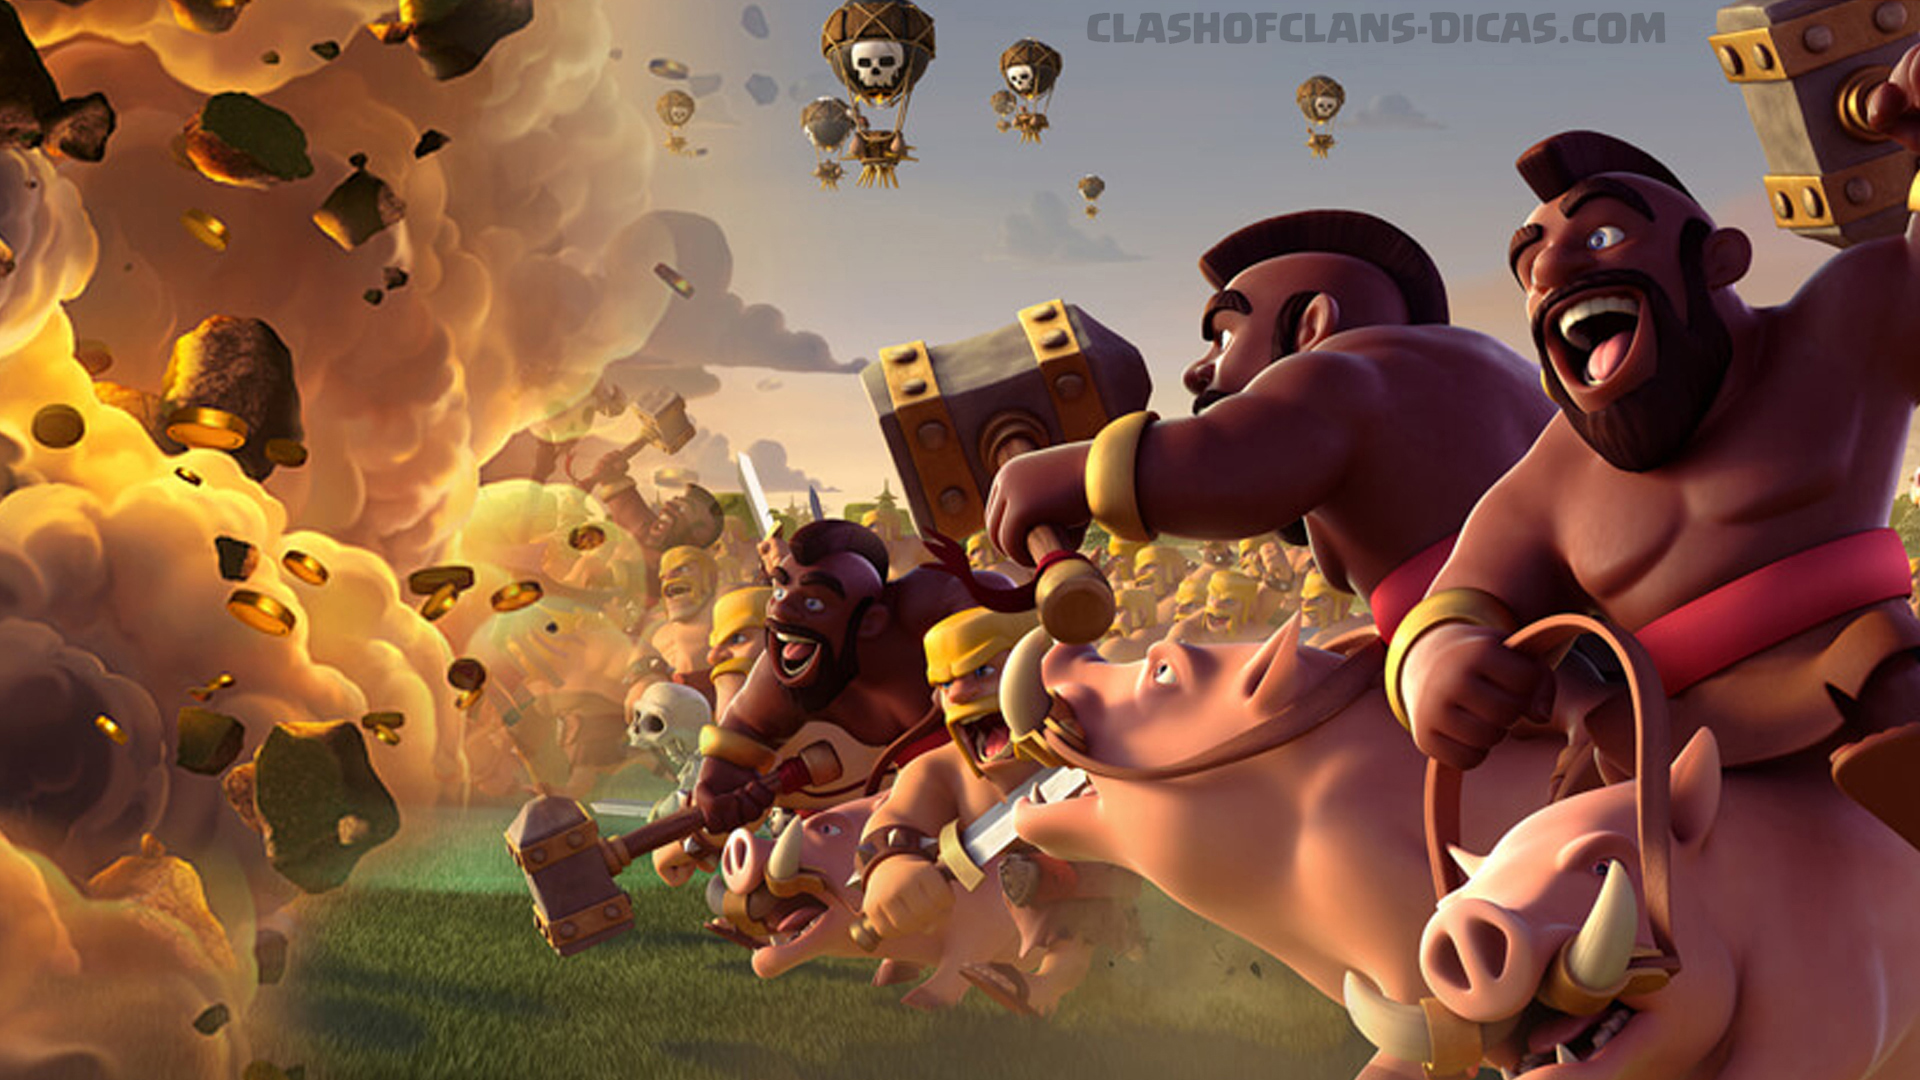 Clash Of Clans Wallpapers Wallpaper 1920x1080